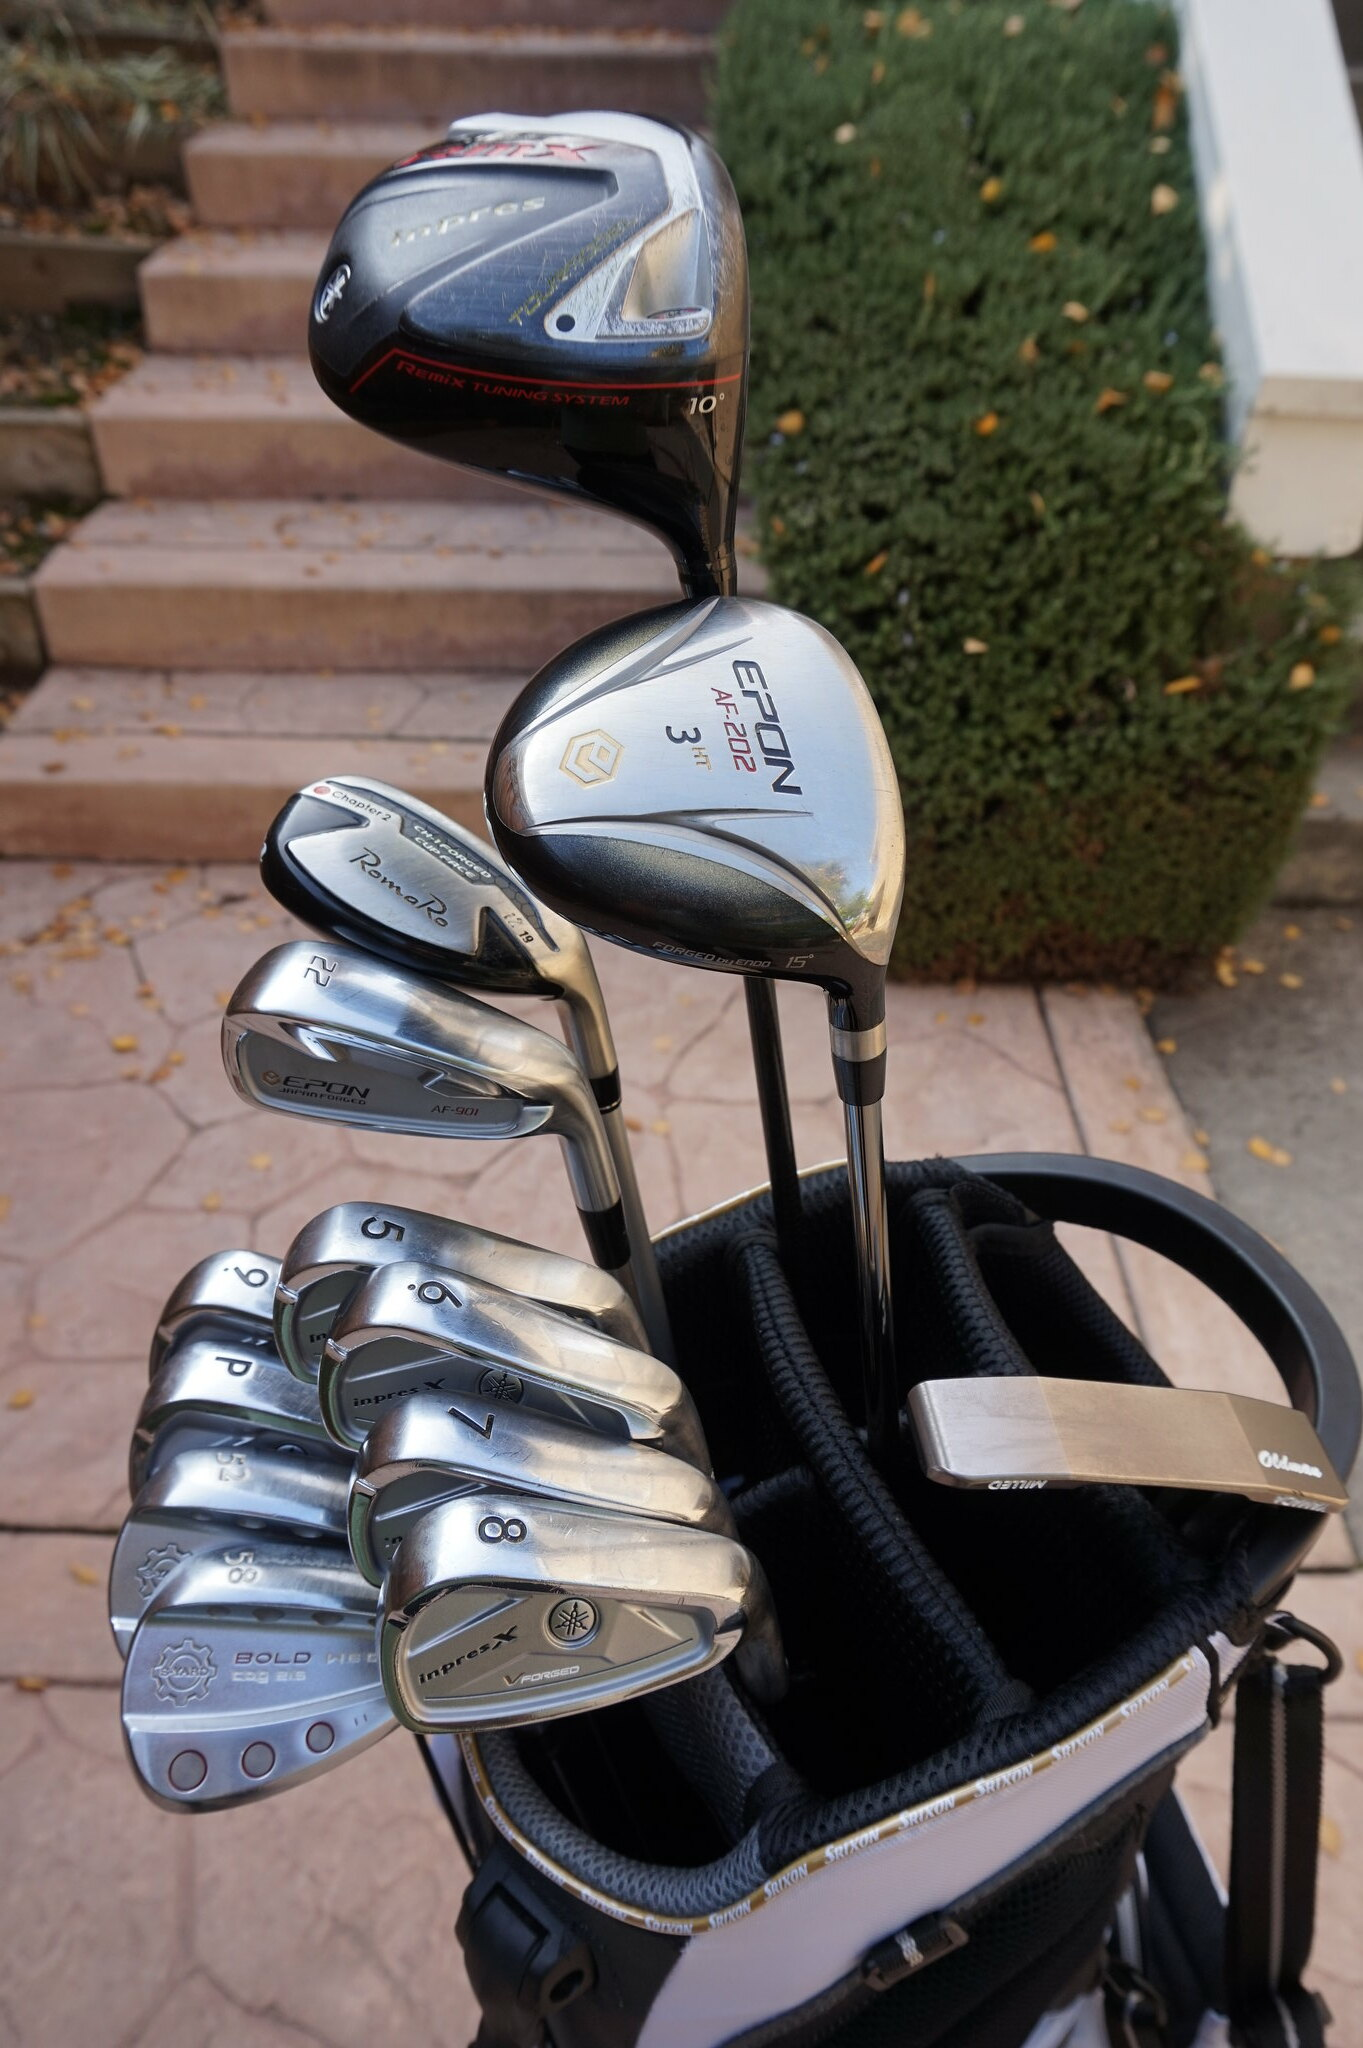 2015 Japanese Golf Clubs Recap What I Learned And Played Motgolf Spinner Iron Hiro Comp Bag A